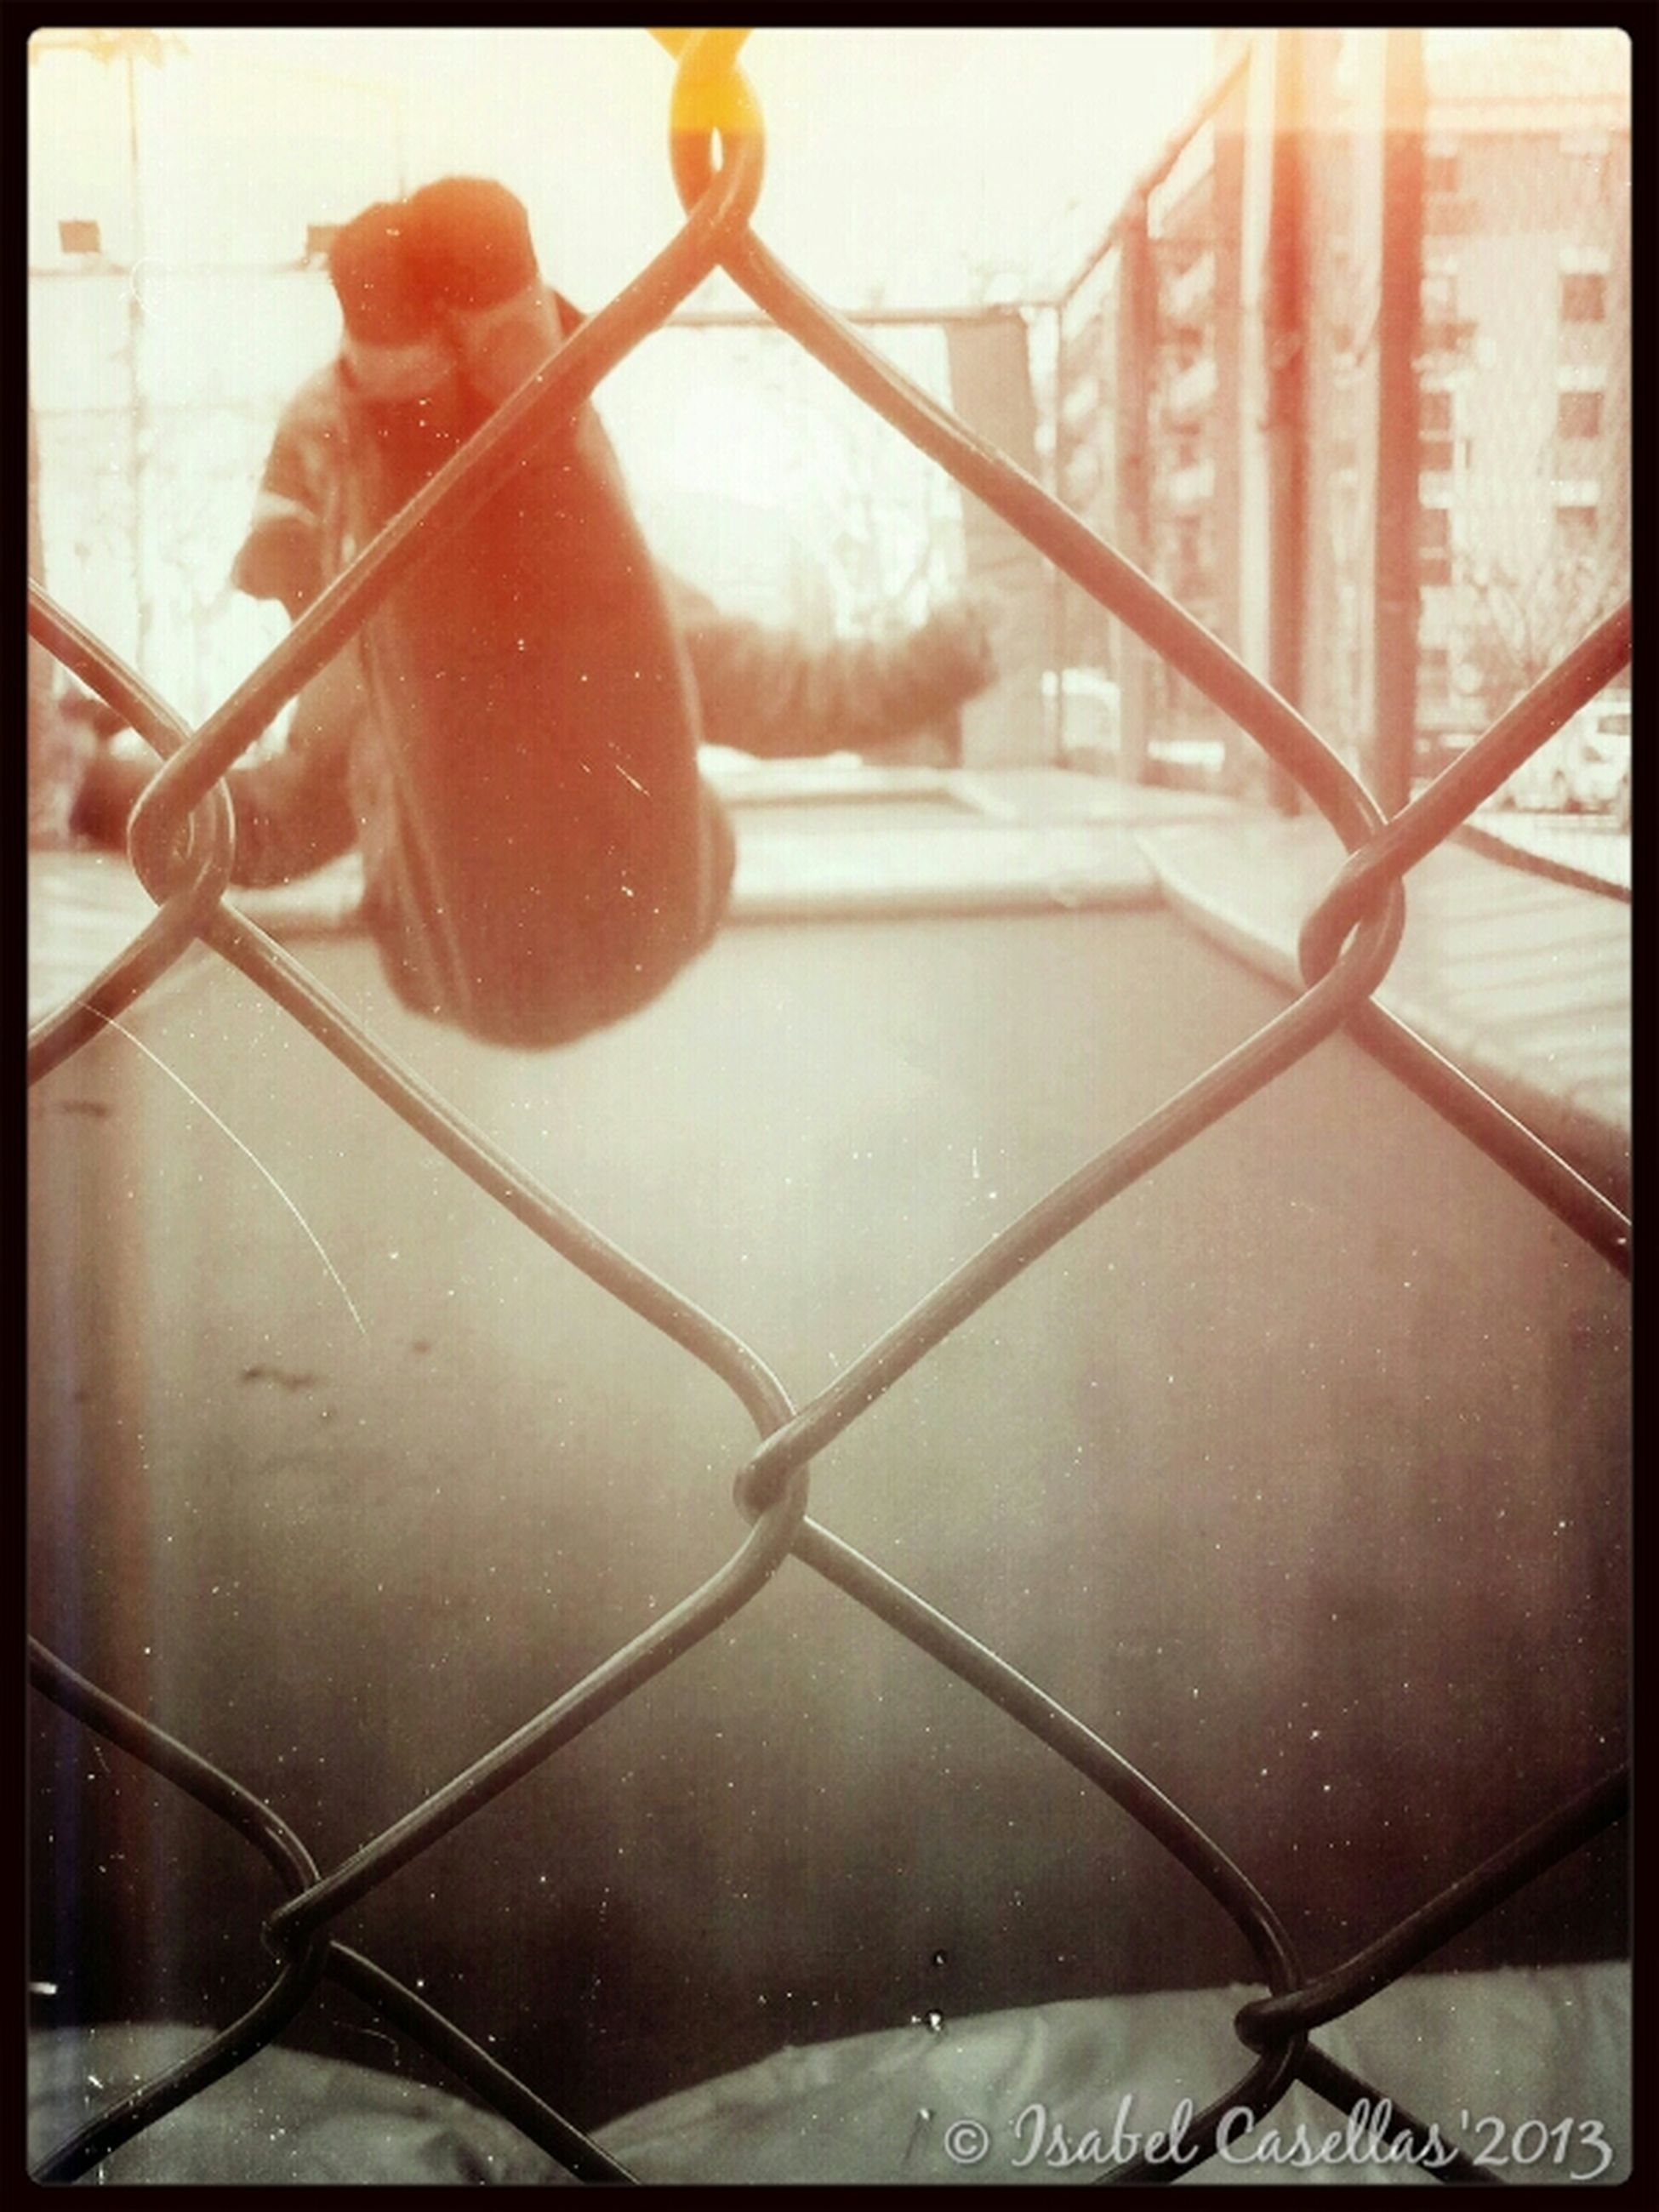 transfer print, metal, auto post production filter, close-up, water, chainlink fence, metallic, protection, safety, railing, fence, day, built structure, rusty, no people, outdoors, drop, wet, architecture, security